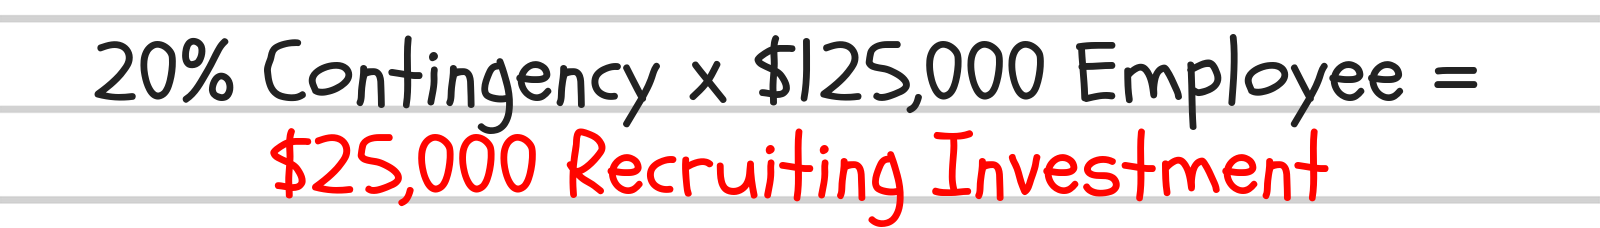 ROI graphic.png